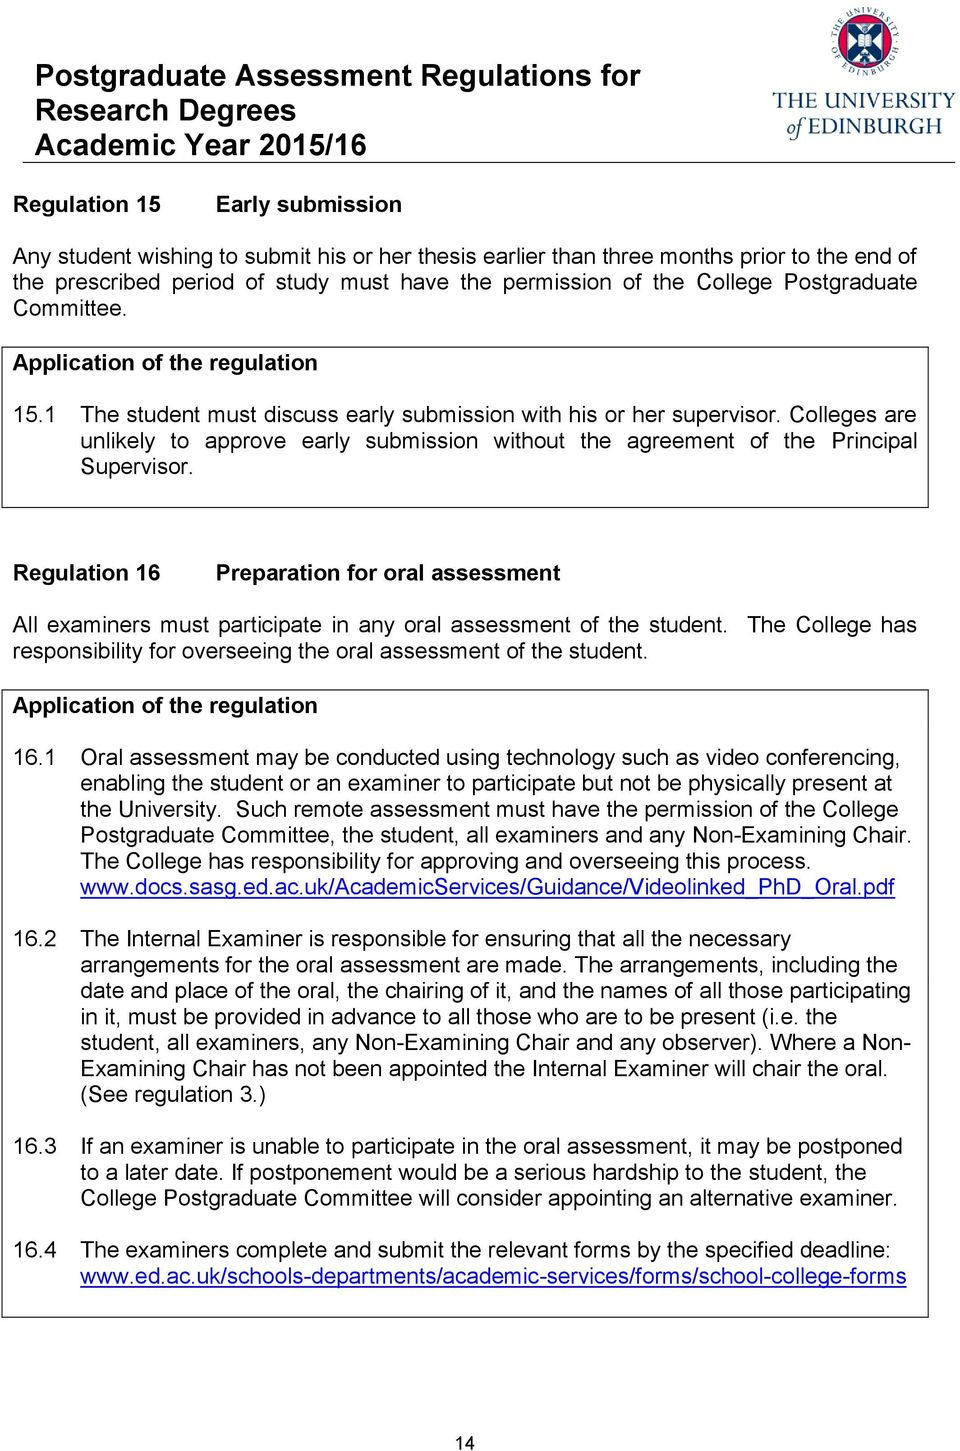 Regulation 16 Preparation for oral assessment All examiners must participate in any oral assessment of the student. The College has responsibility for overseeing the oral assessment of the student.